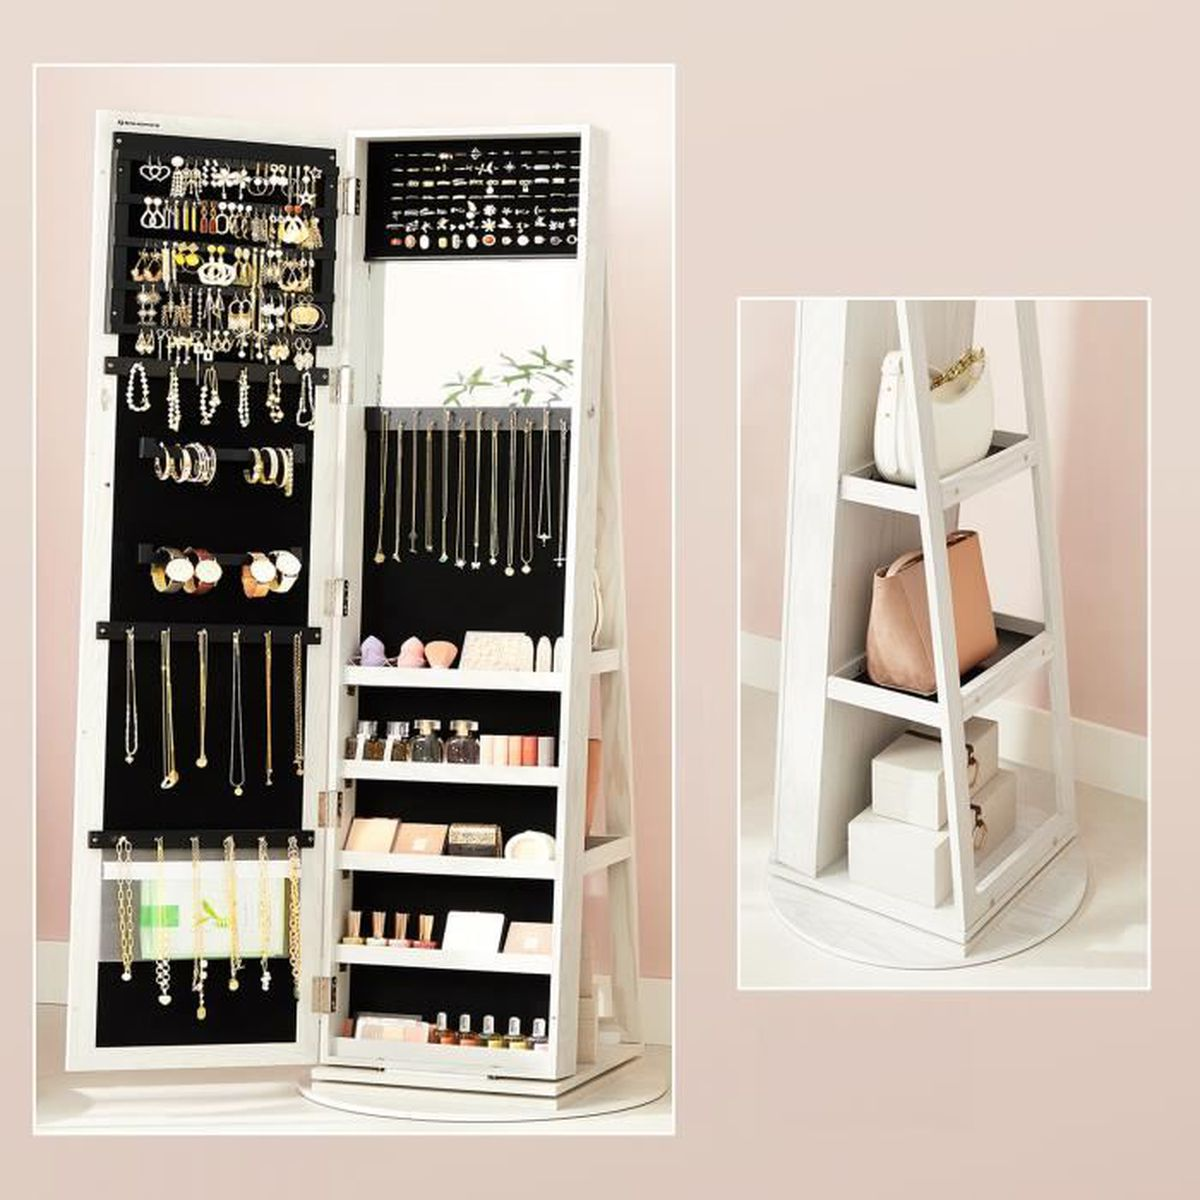 meuble bijoux armoire bijoux miroir psych avec serrure et etag res pivotante 360 blanc. Black Bedroom Furniture Sets. Home Design Ideas